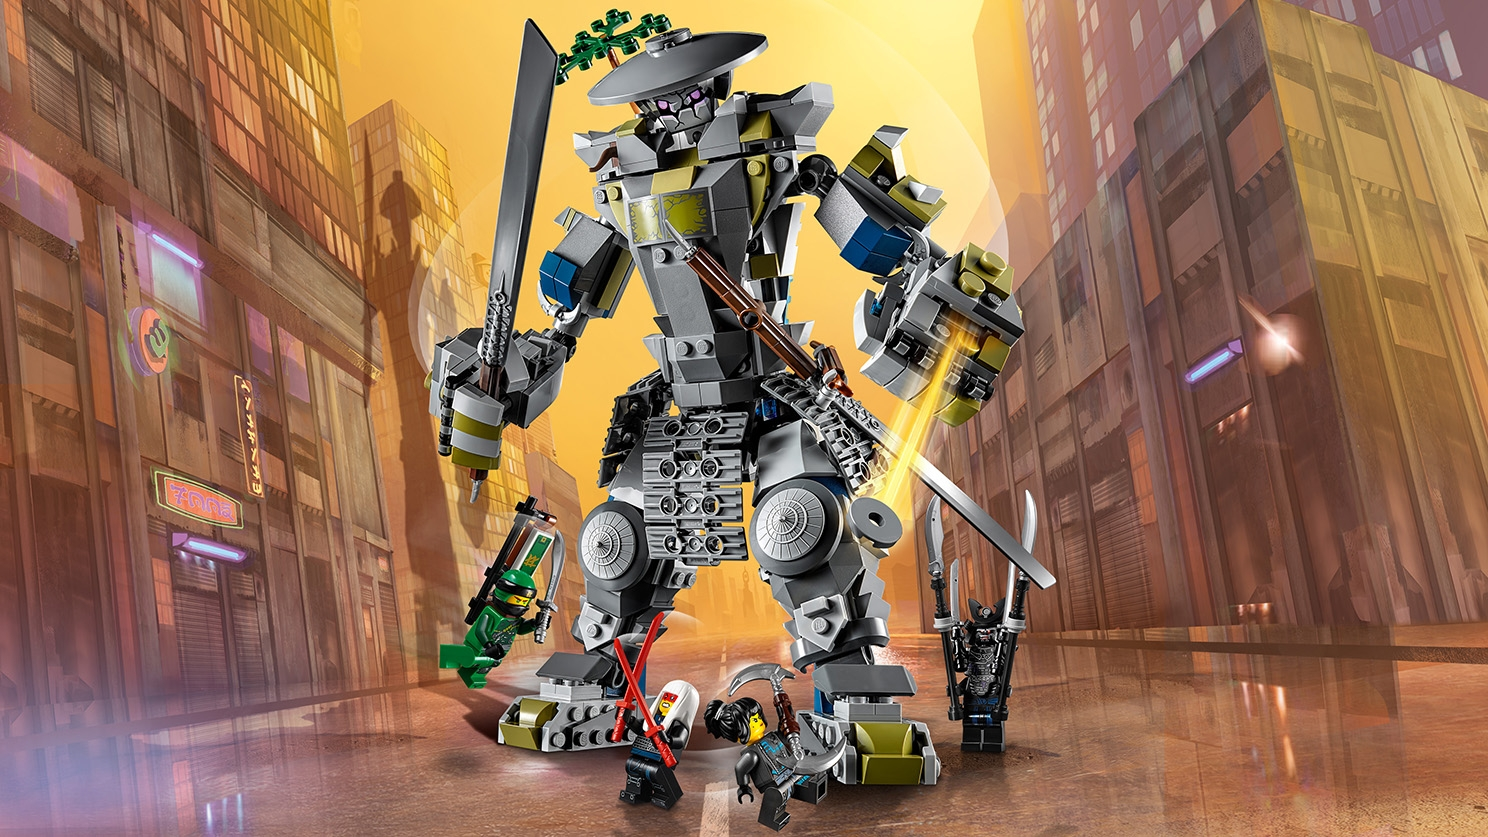 LEGO Ninjago - 70658 Oni Titan - This huge grey robot mech has gigantic katanas and the ninja heroes tries to stop the mech from destroying the city.